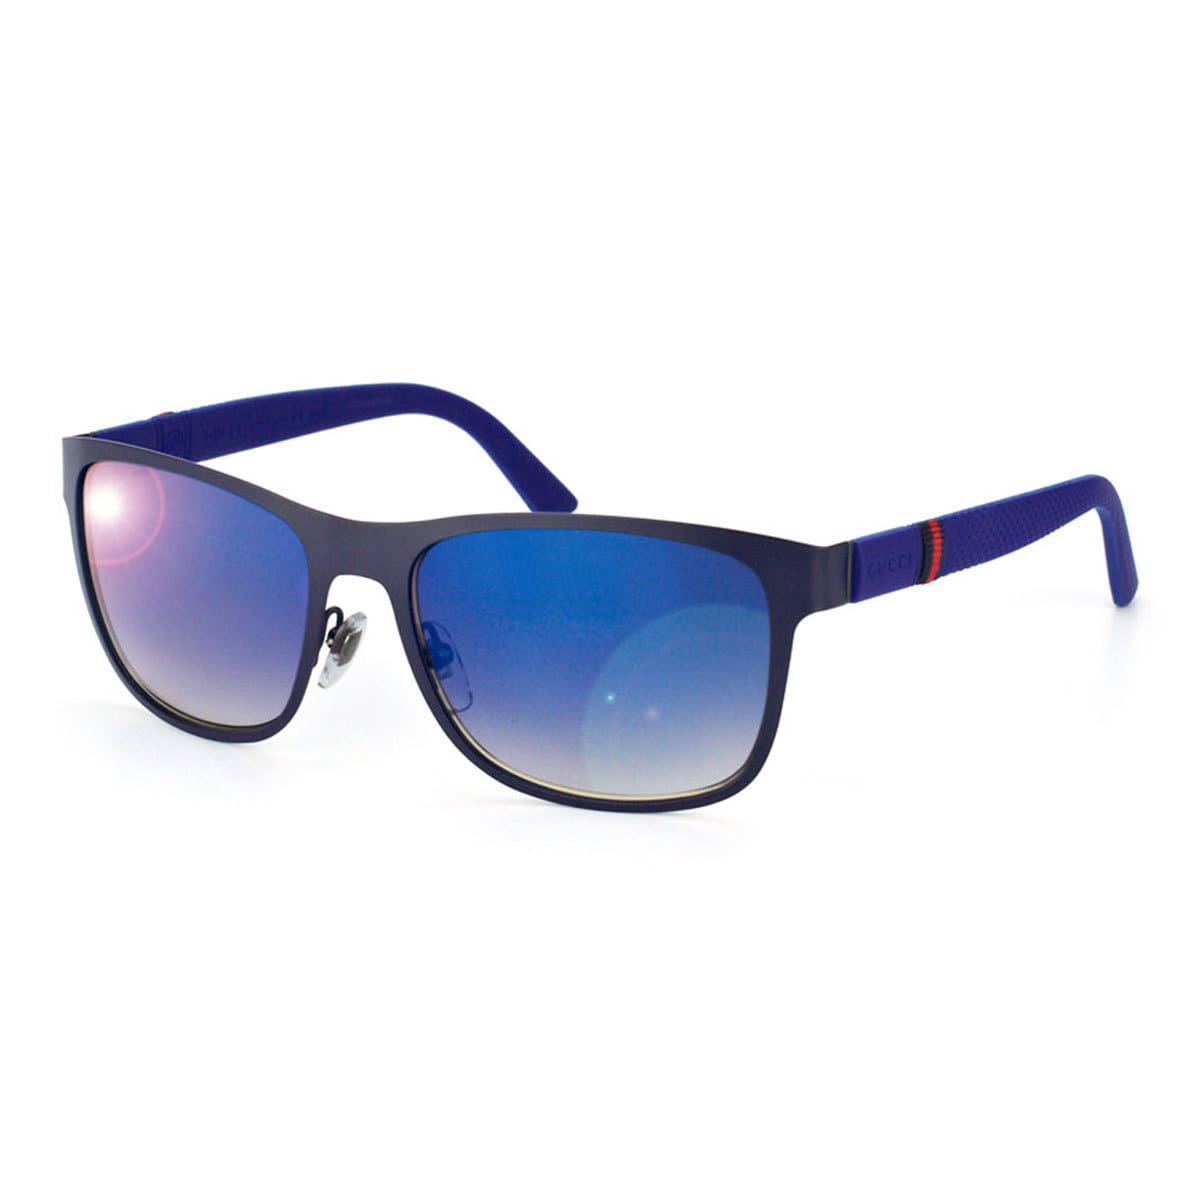 3a559b32024 Shop Gucci Men s GG 2247 S 4VDKM Sunglasses - Free Shipping Today -  Overstock - 9036503